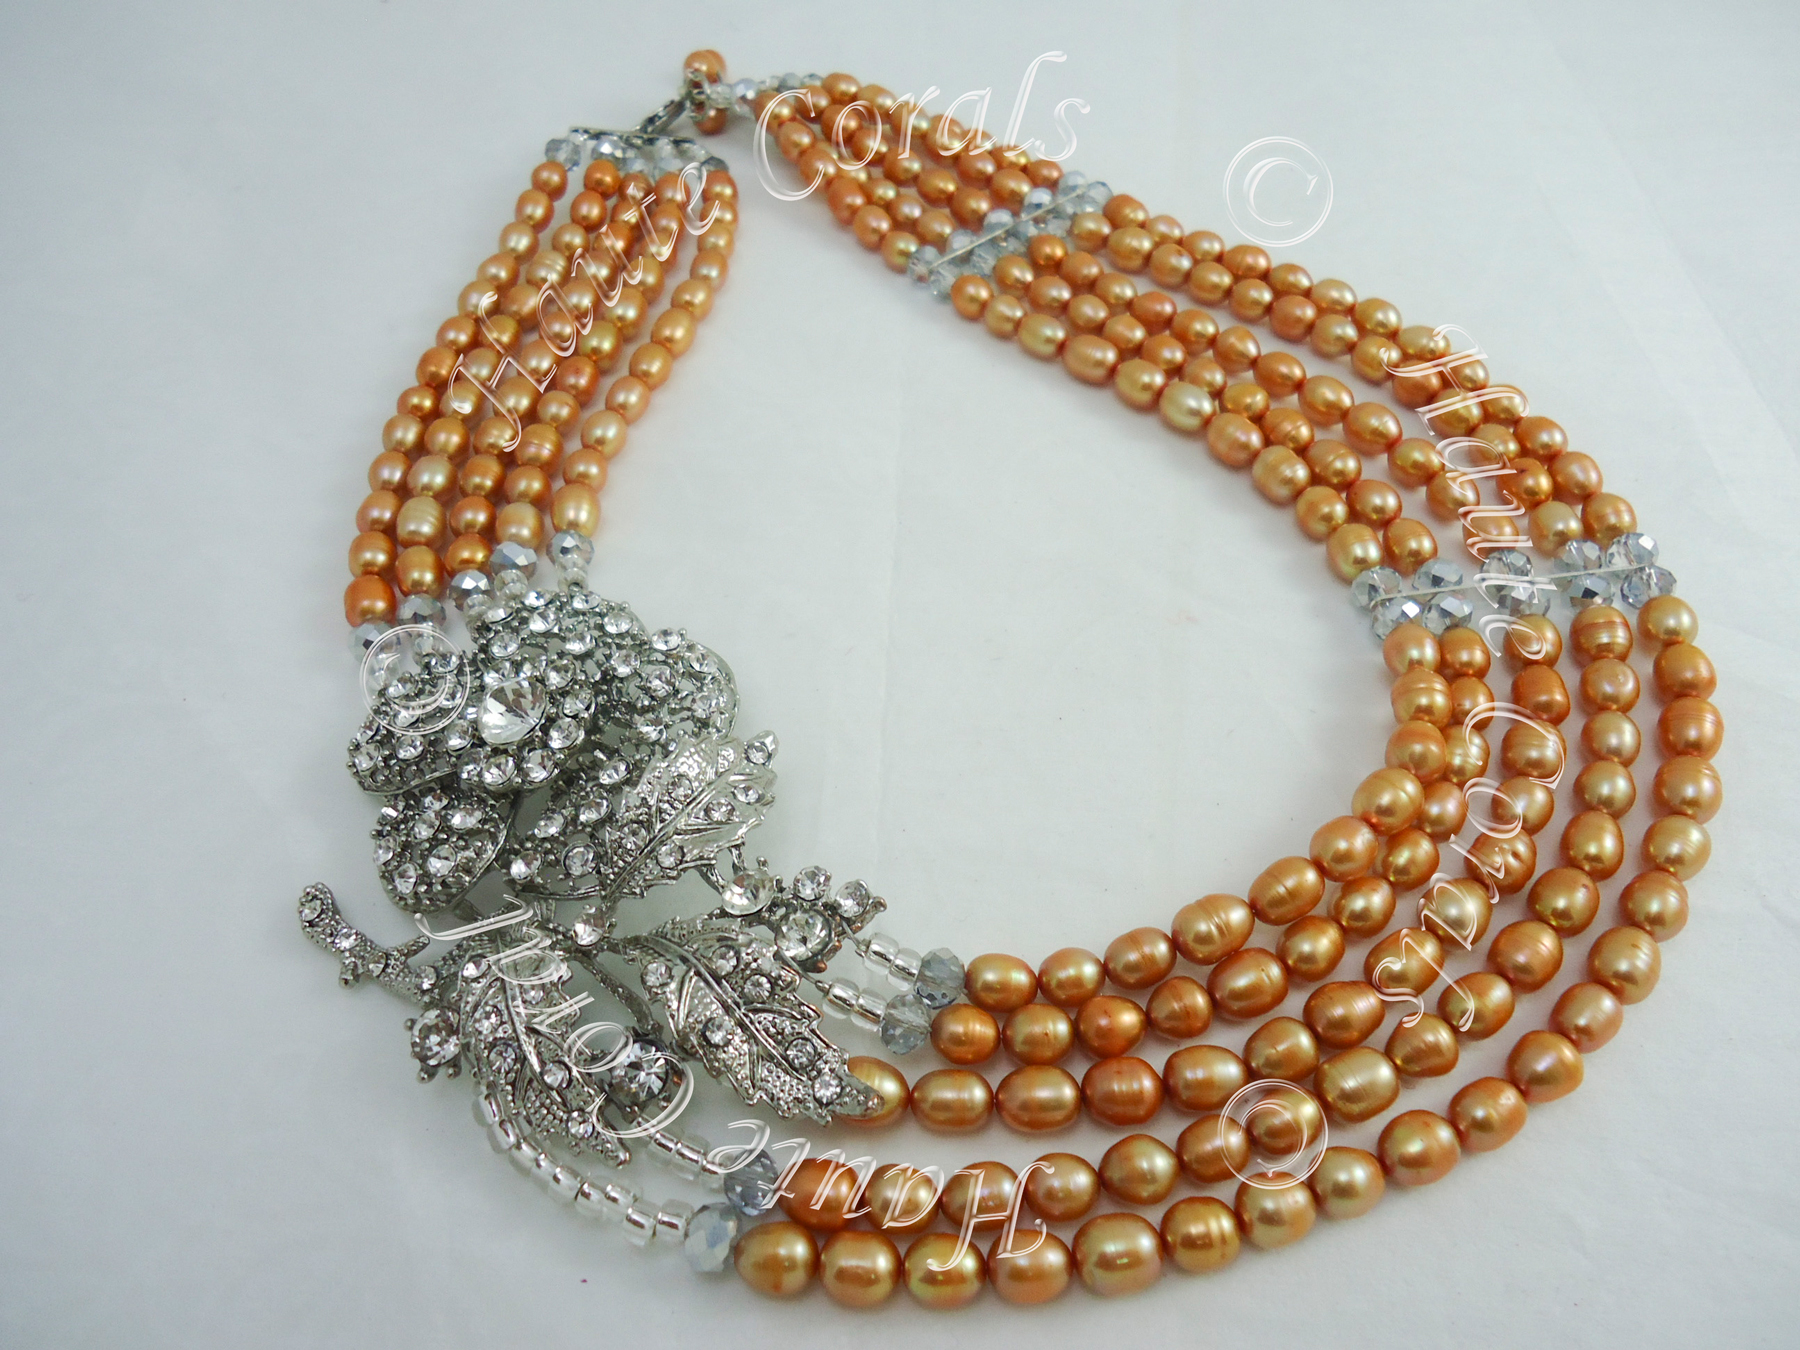 Tribal Accessories, Tribal Glam, Tribal Jewelry, Crystal Statement Necklace,  Layered Statement Necklace